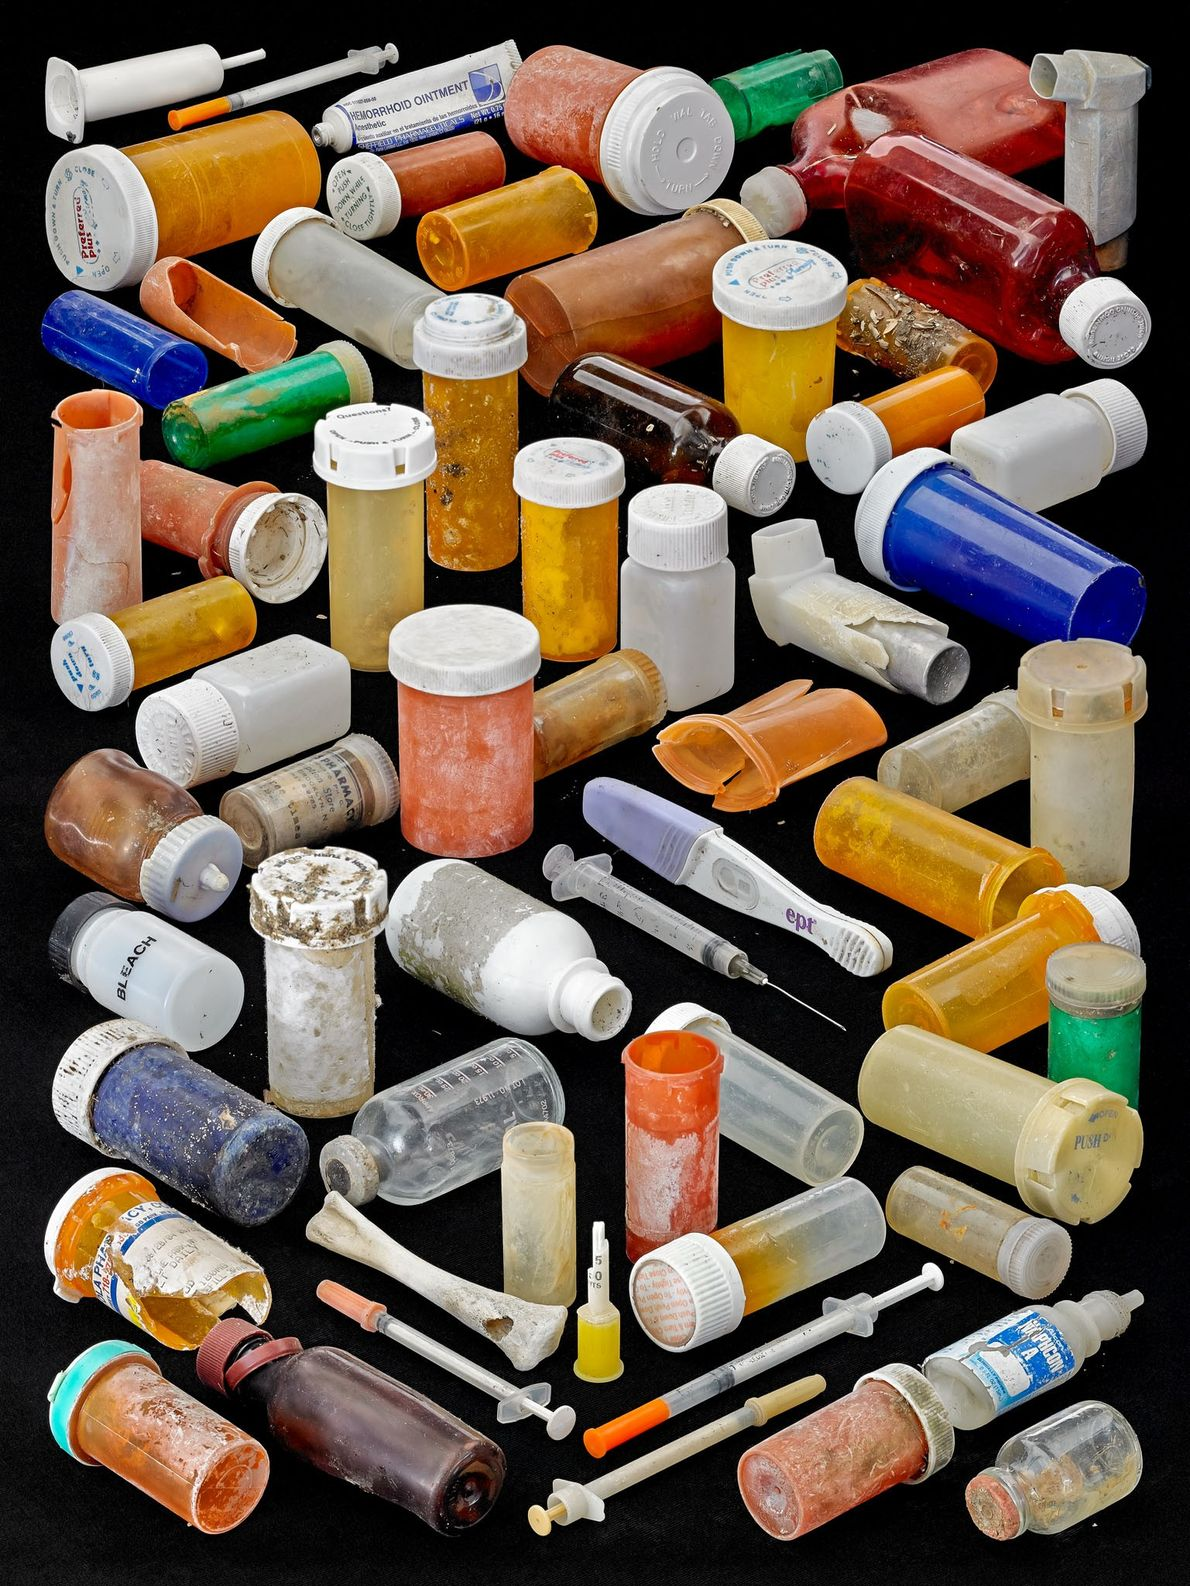 Even pharmaceutical waste, including pill containers, syringes, and inhalers, finds its way to the beach.